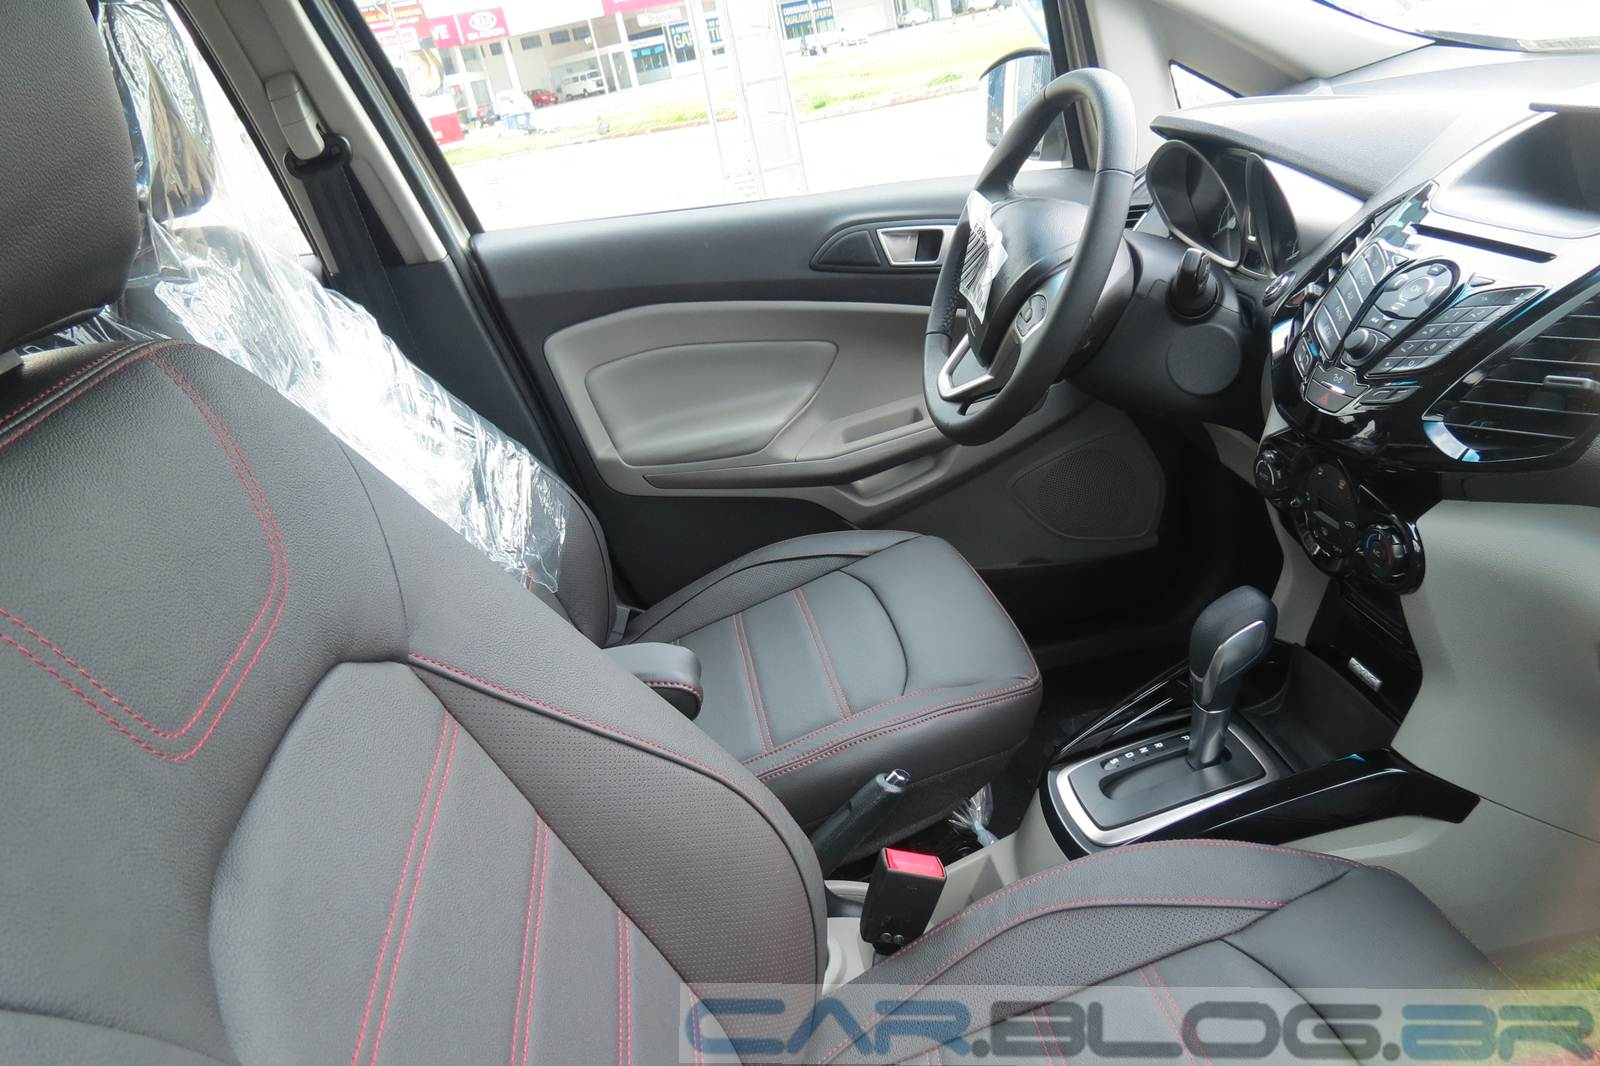 Ford EcoSport Powerhift - interior